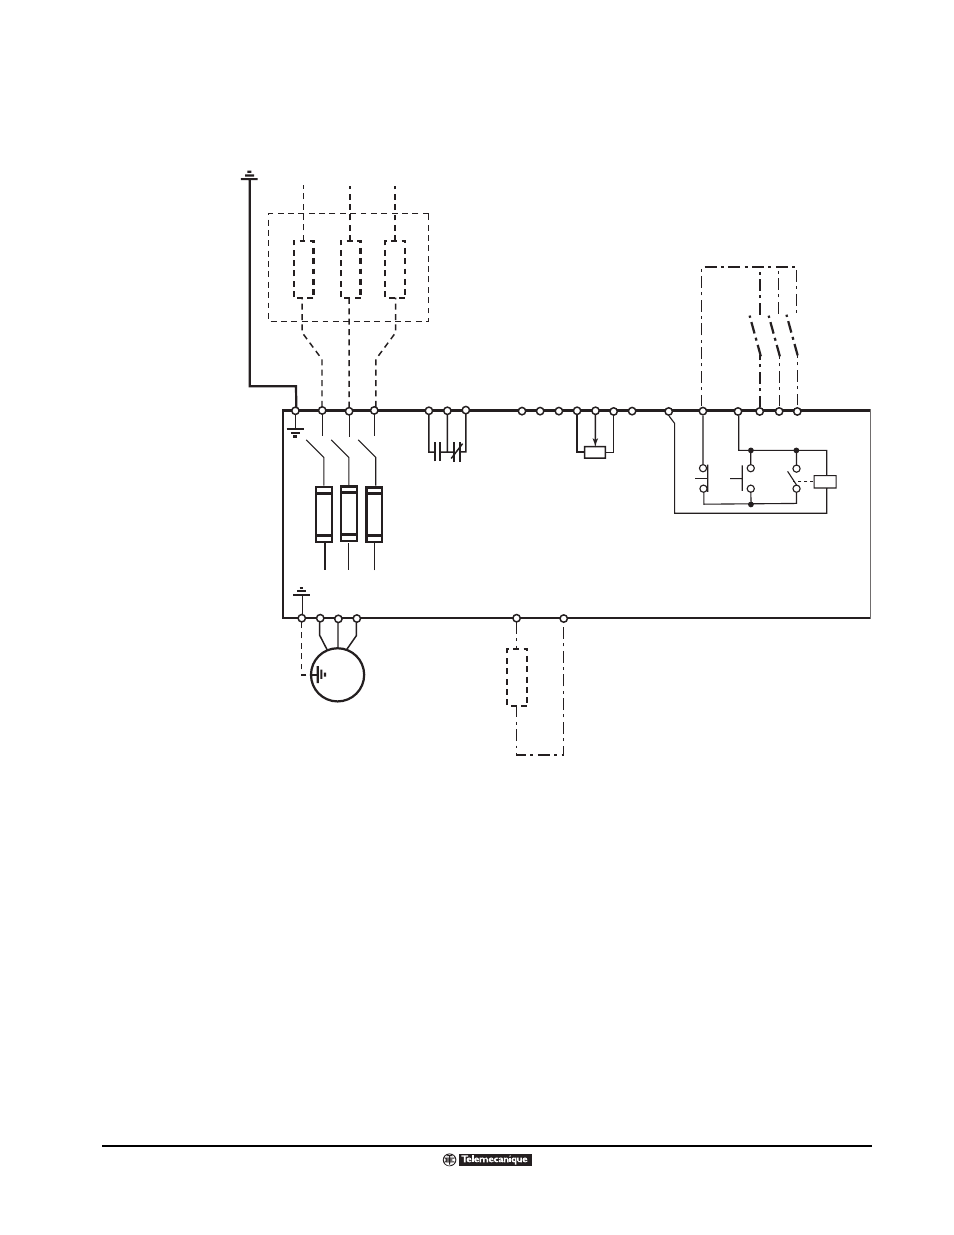 hight resolution of altivar 58 trx ac drives wiring recommendations schneider electric altivar 58 trx user manual page 112 232